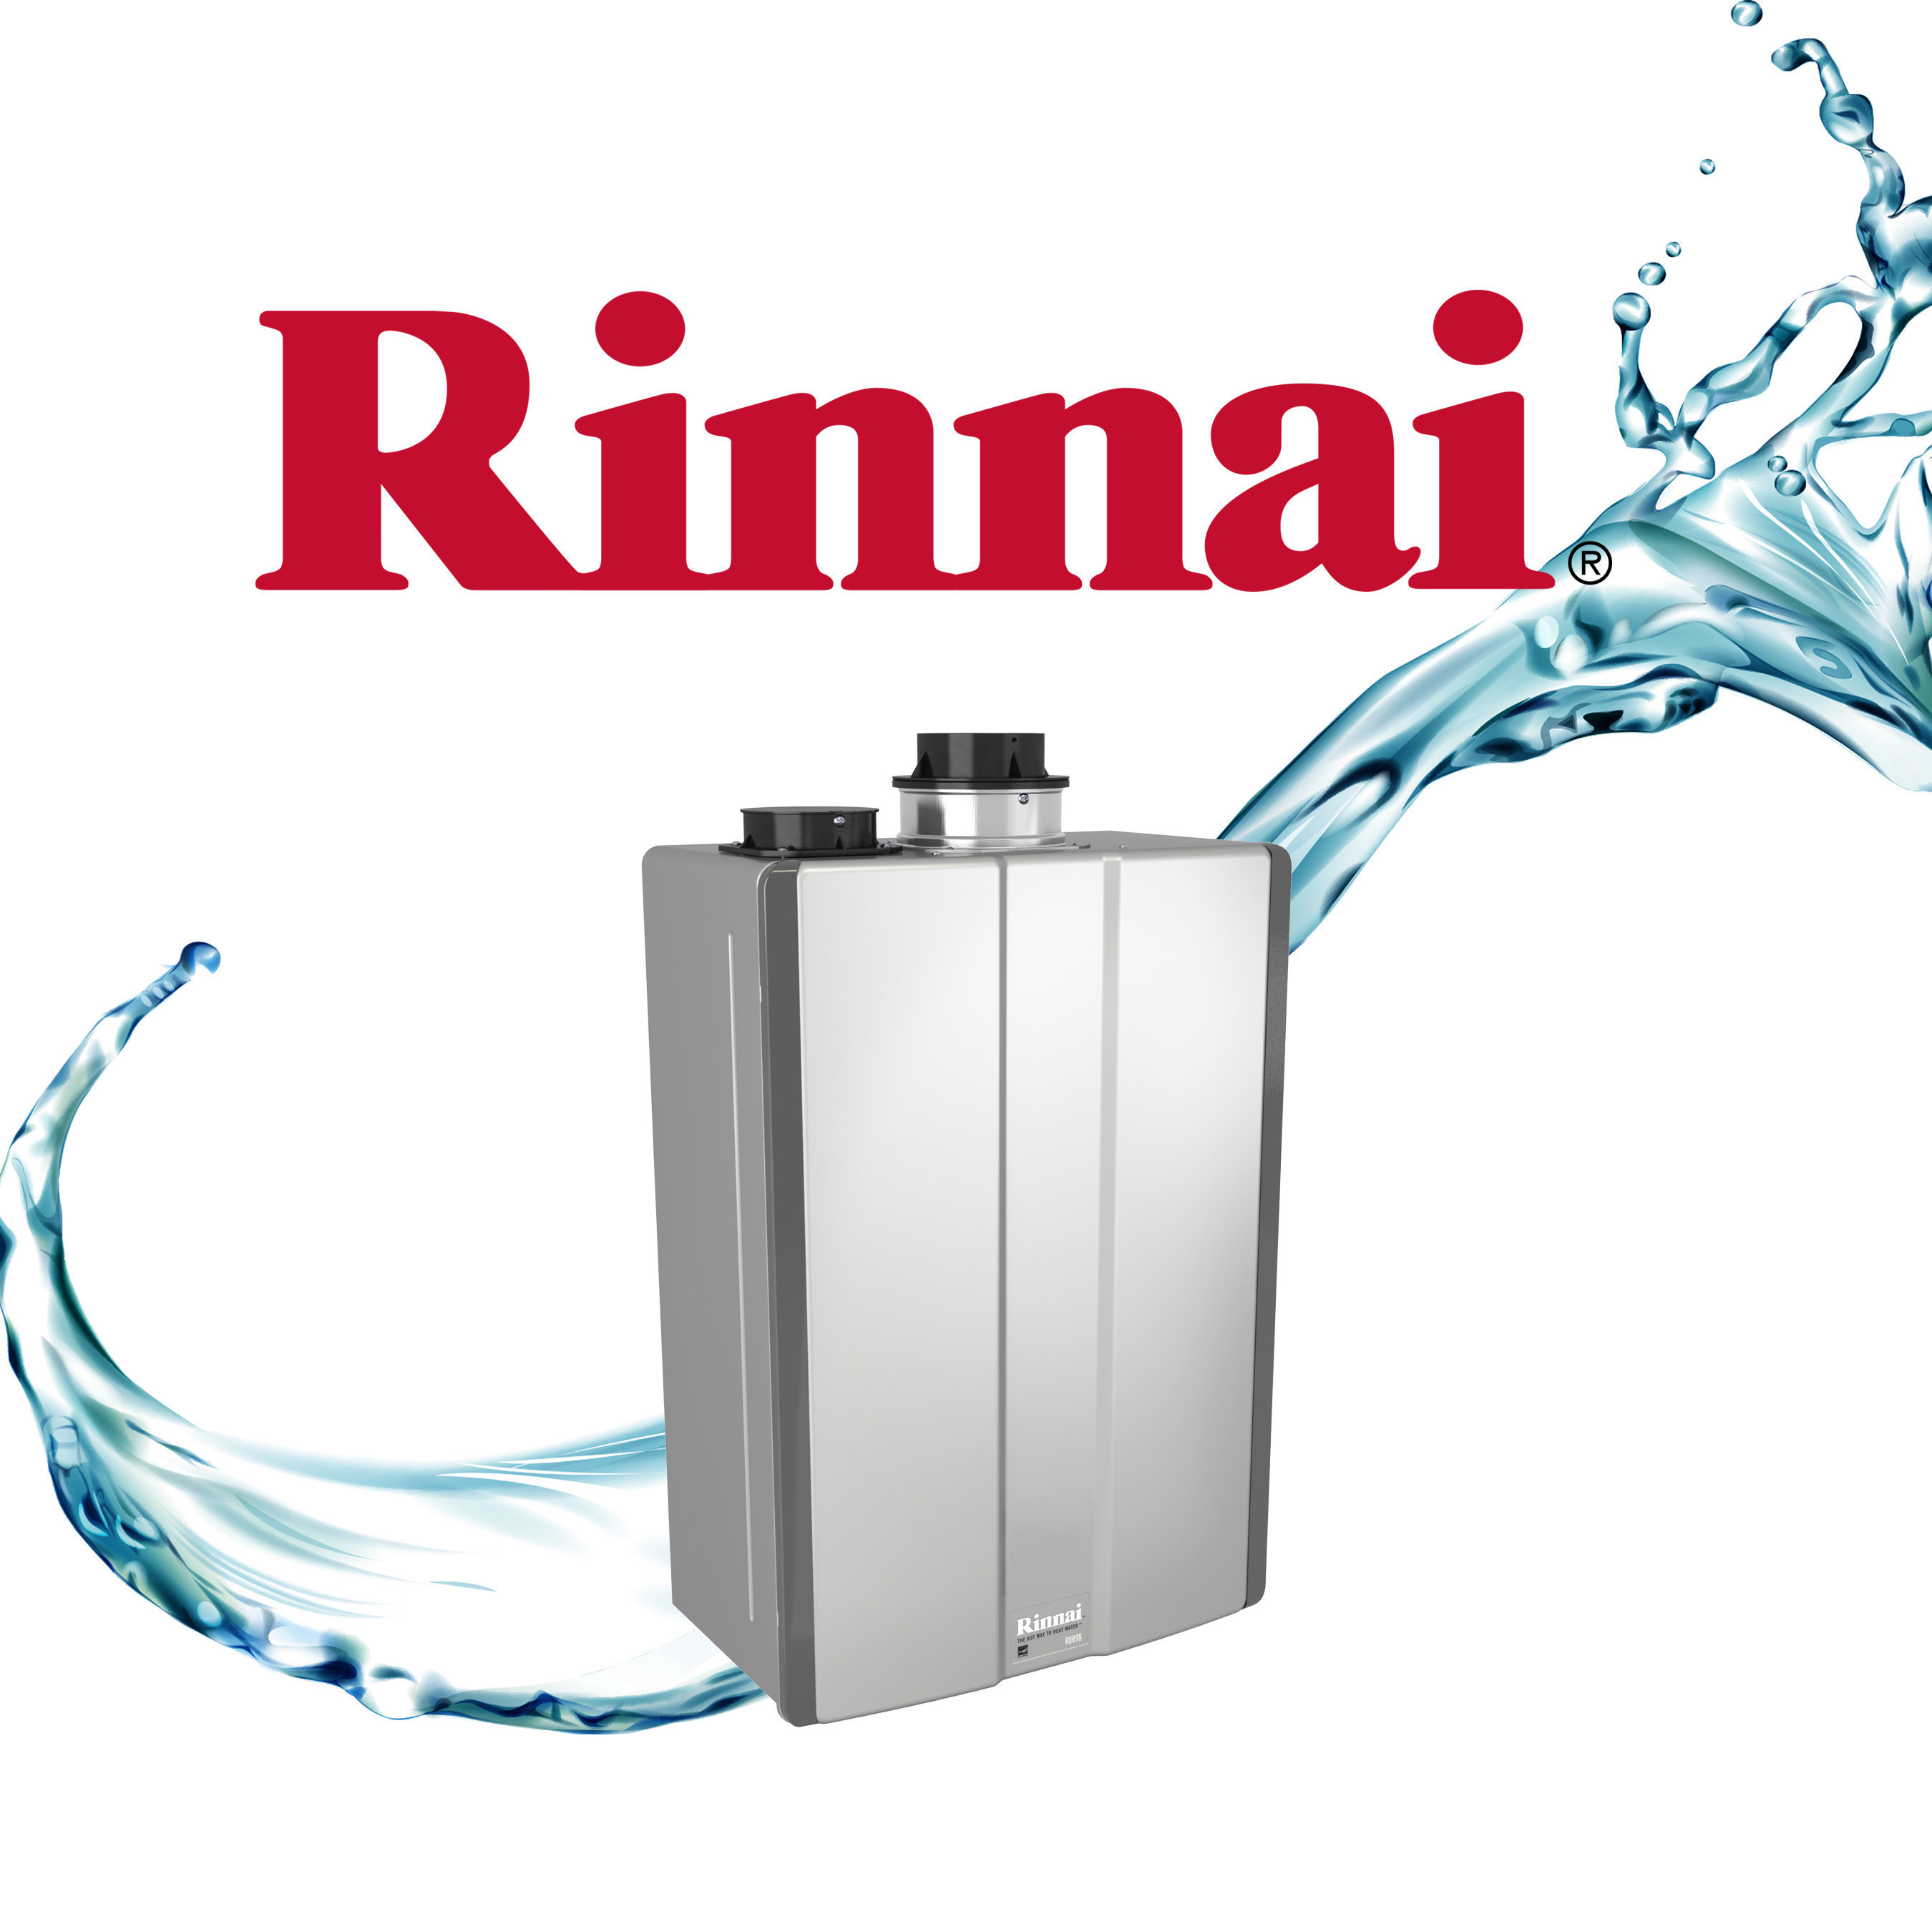 Rinnai Finishes 2015 With Record Breaking Unit Sales And